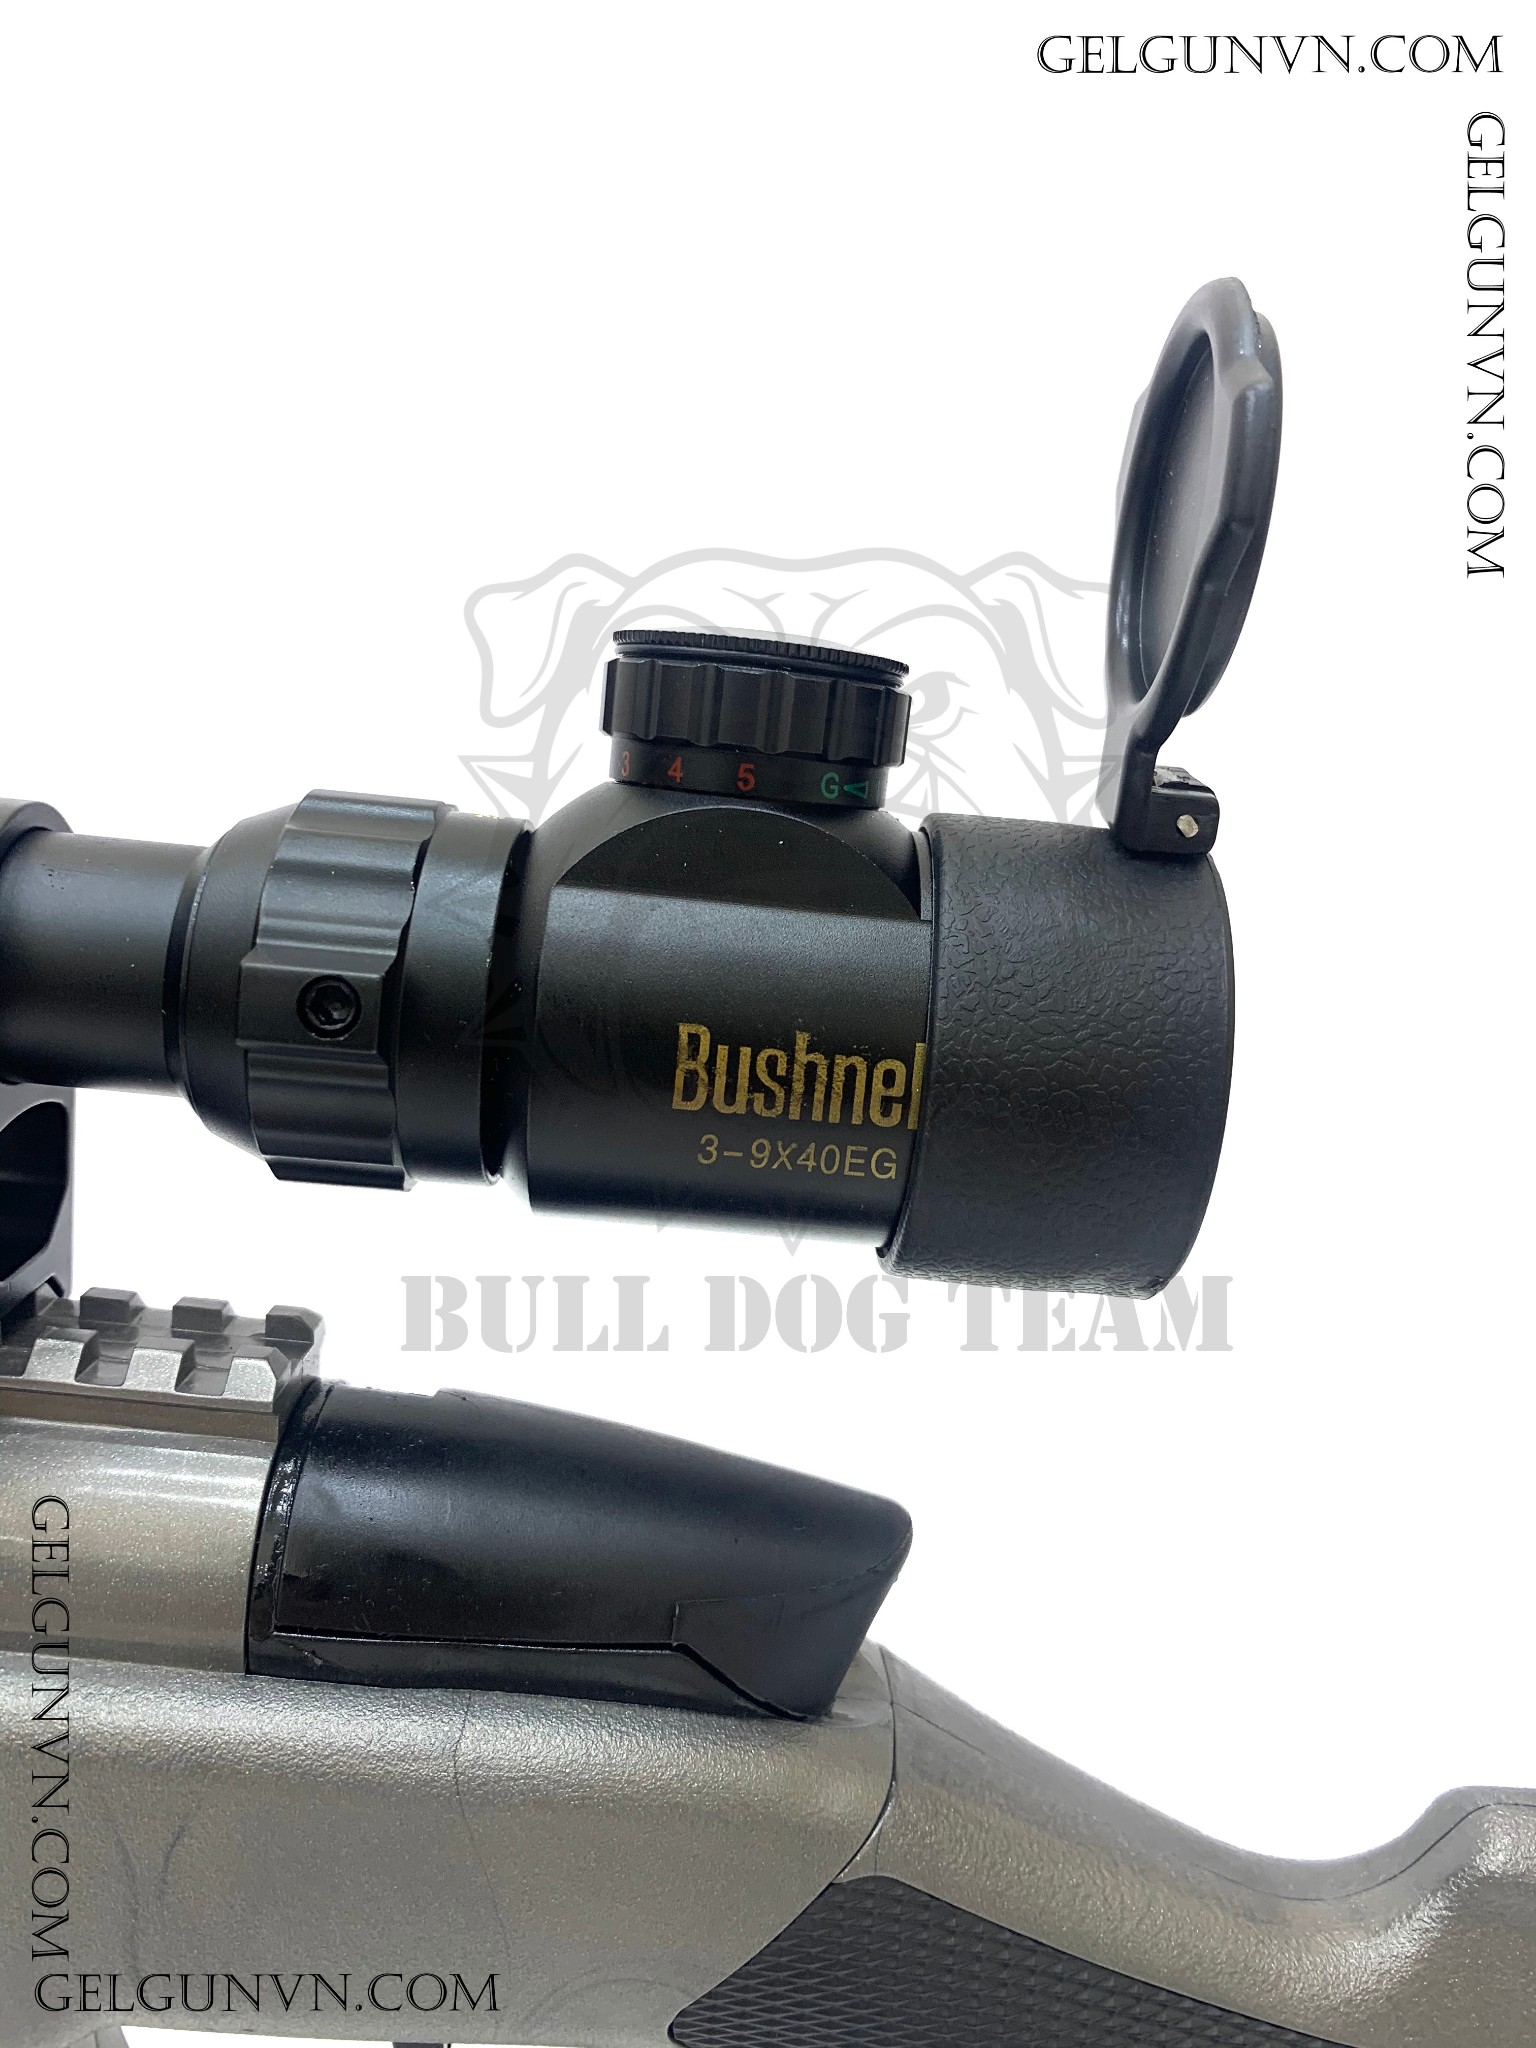 Scope Bushnell 3-9x40